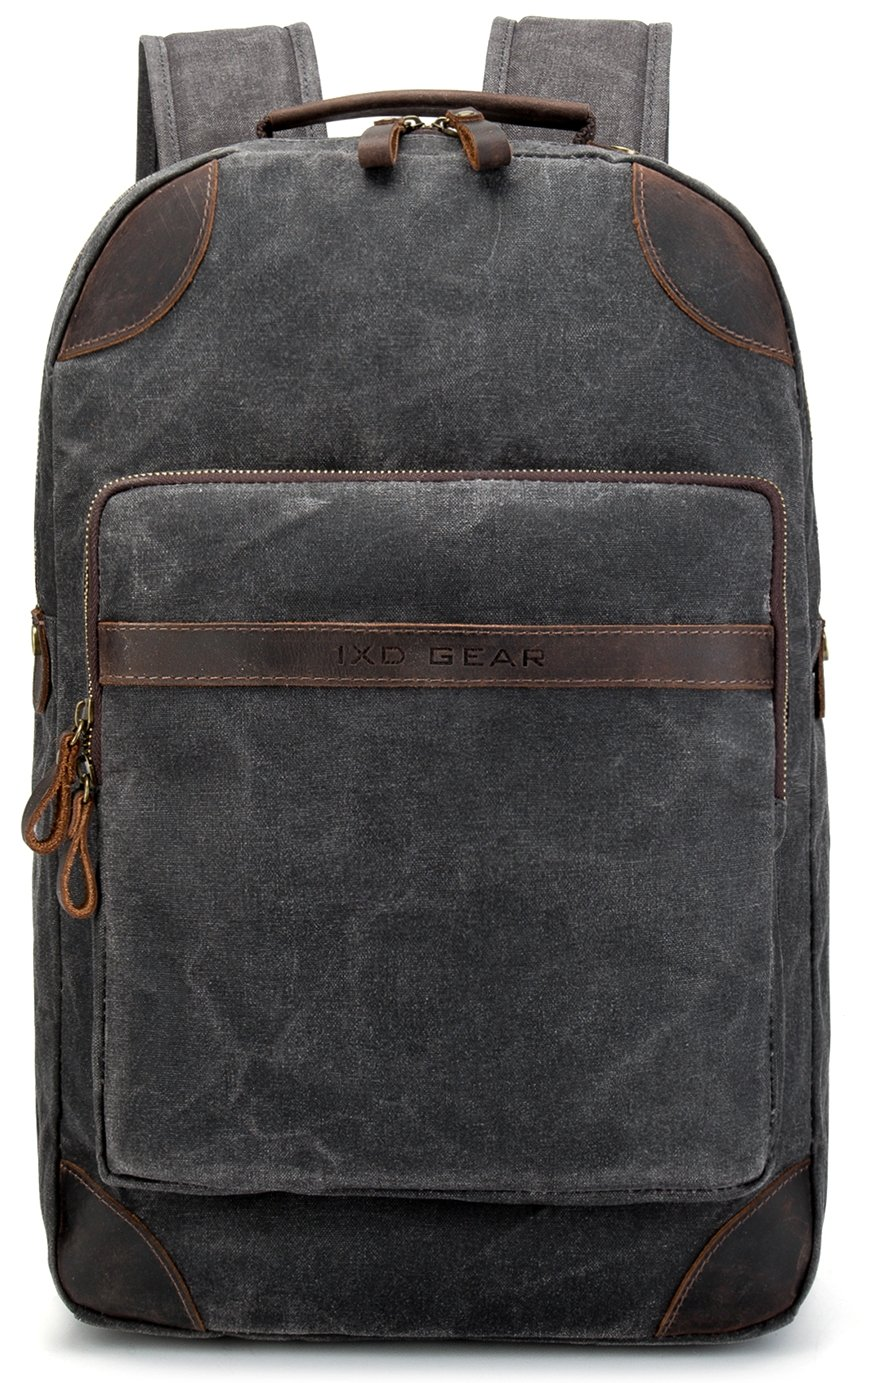 Vintave Waterproof Oil Waxed Canvas Genuine Crazy Horse Leather College Weekend Travel Laptops Backpack Fit to Laptop Up to 15.6 Inch By 1XD GEAR by 1XD GEAR (Image #2)